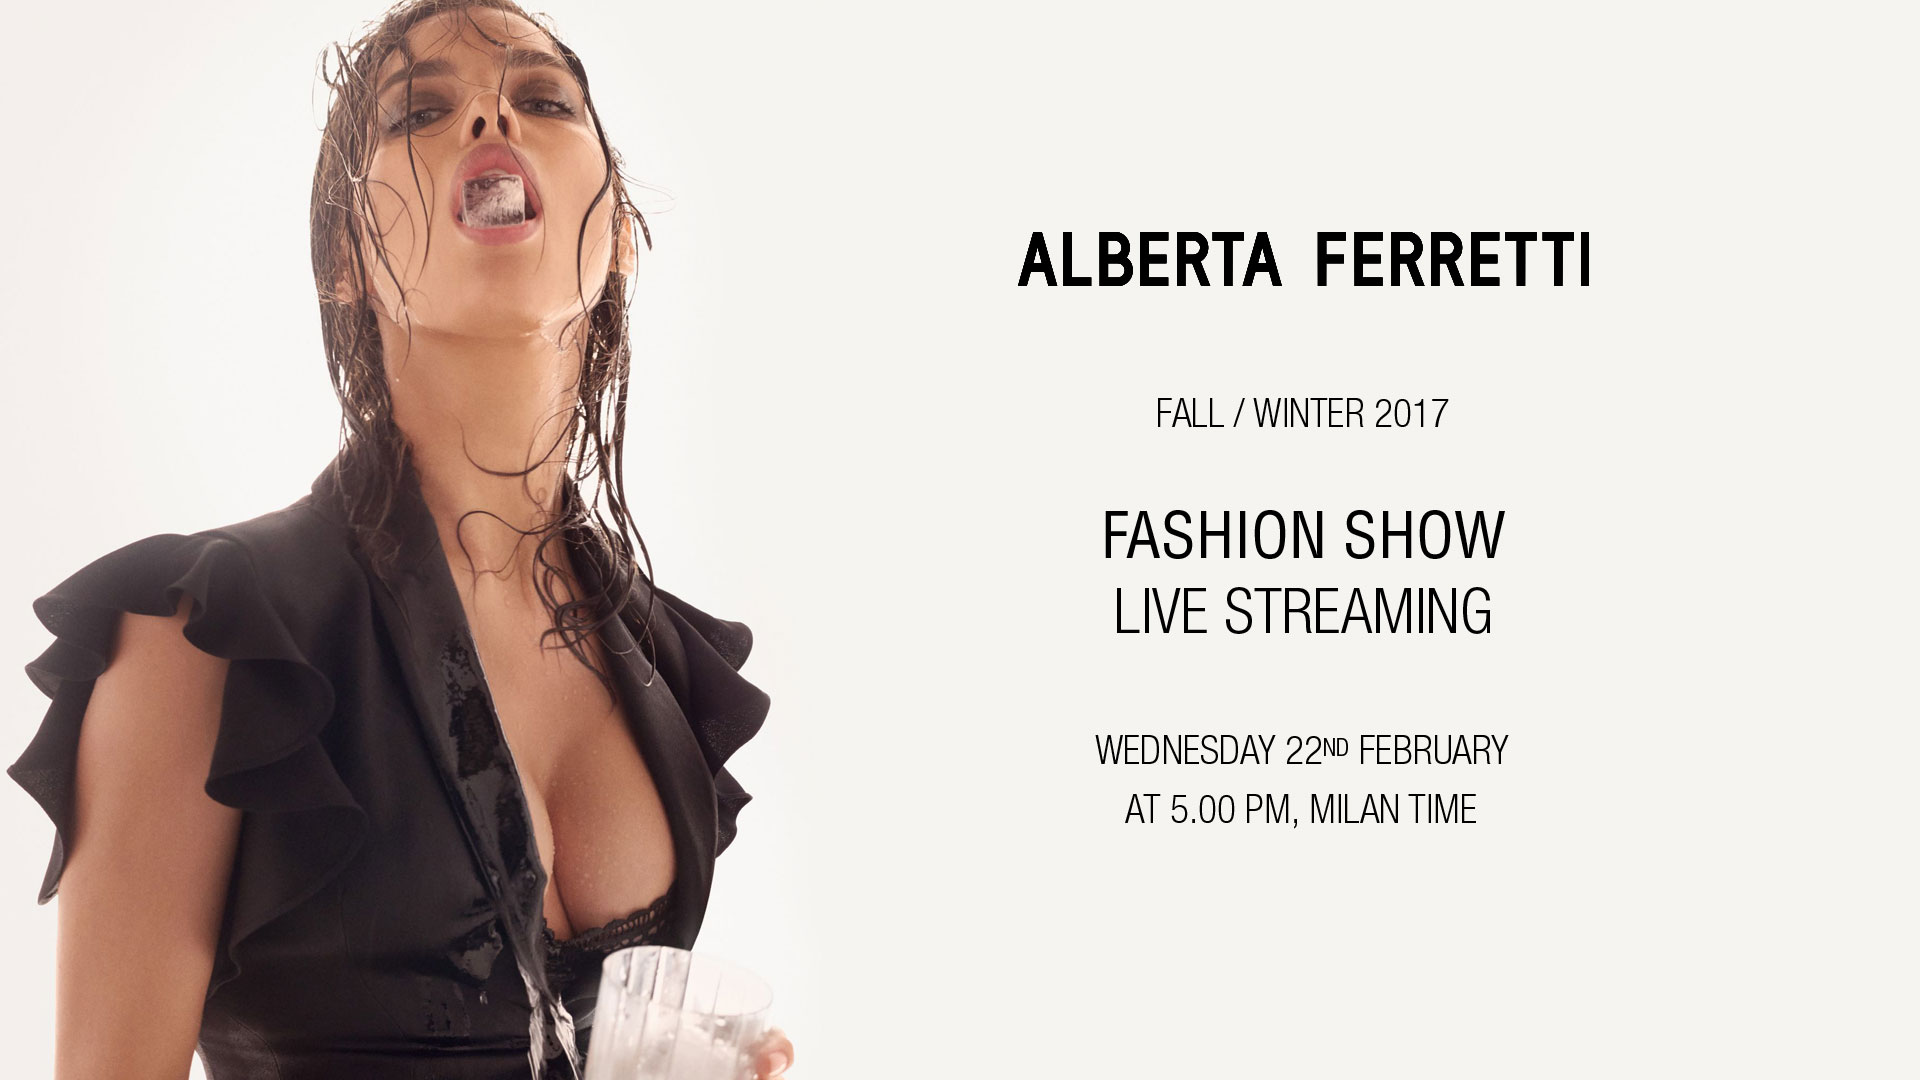 Alberta Ferretti Fall Winter 2017-18 Fashion Show Live Streaming